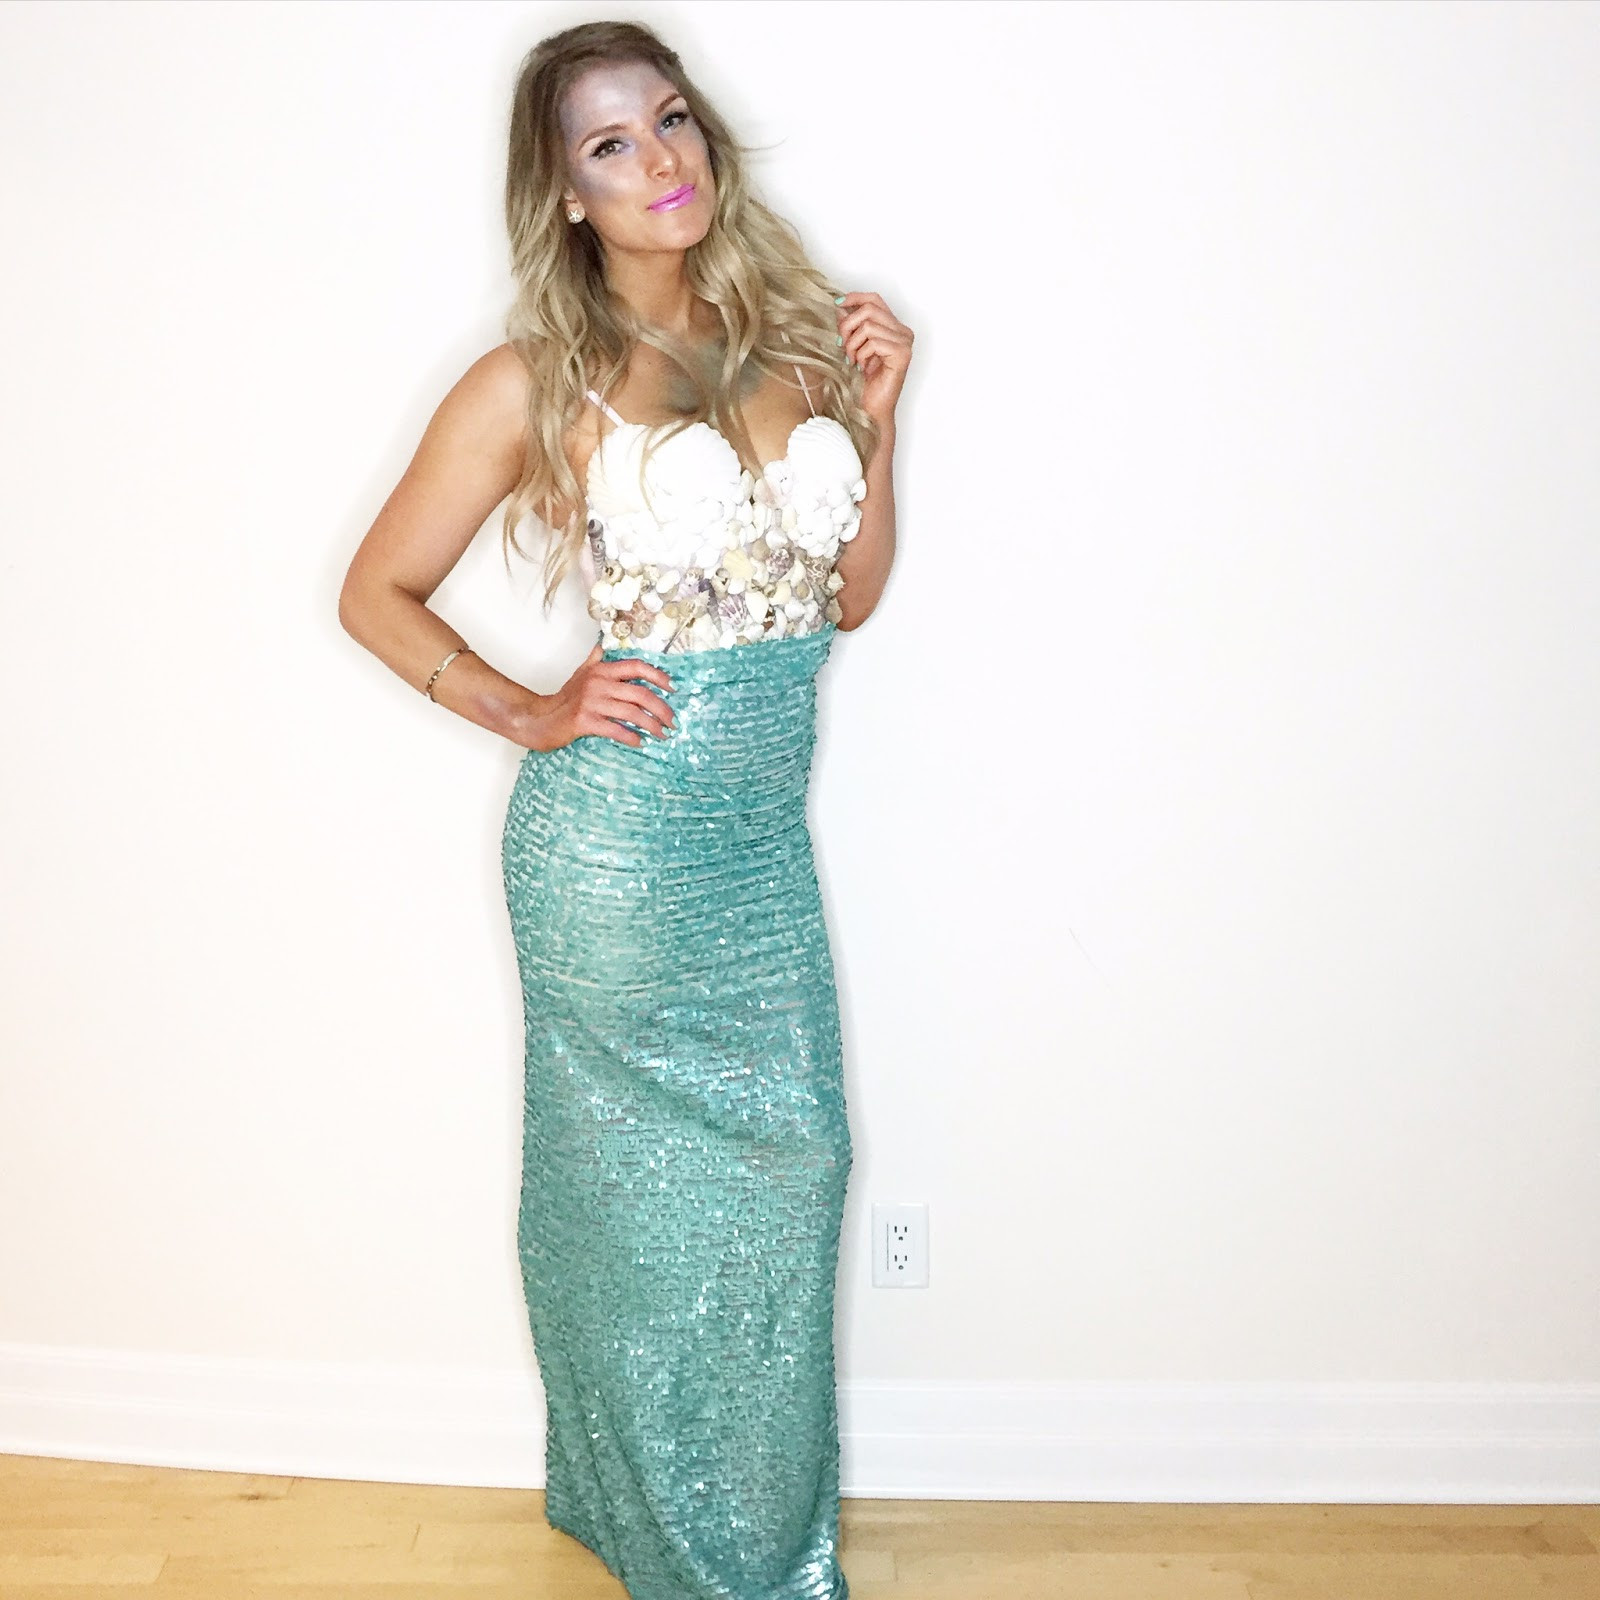 Best ideas about Mermaid Halloween Costumes DIY . Save or Pin 15 Super Creative Halloween Costumes You Can DIY Now.